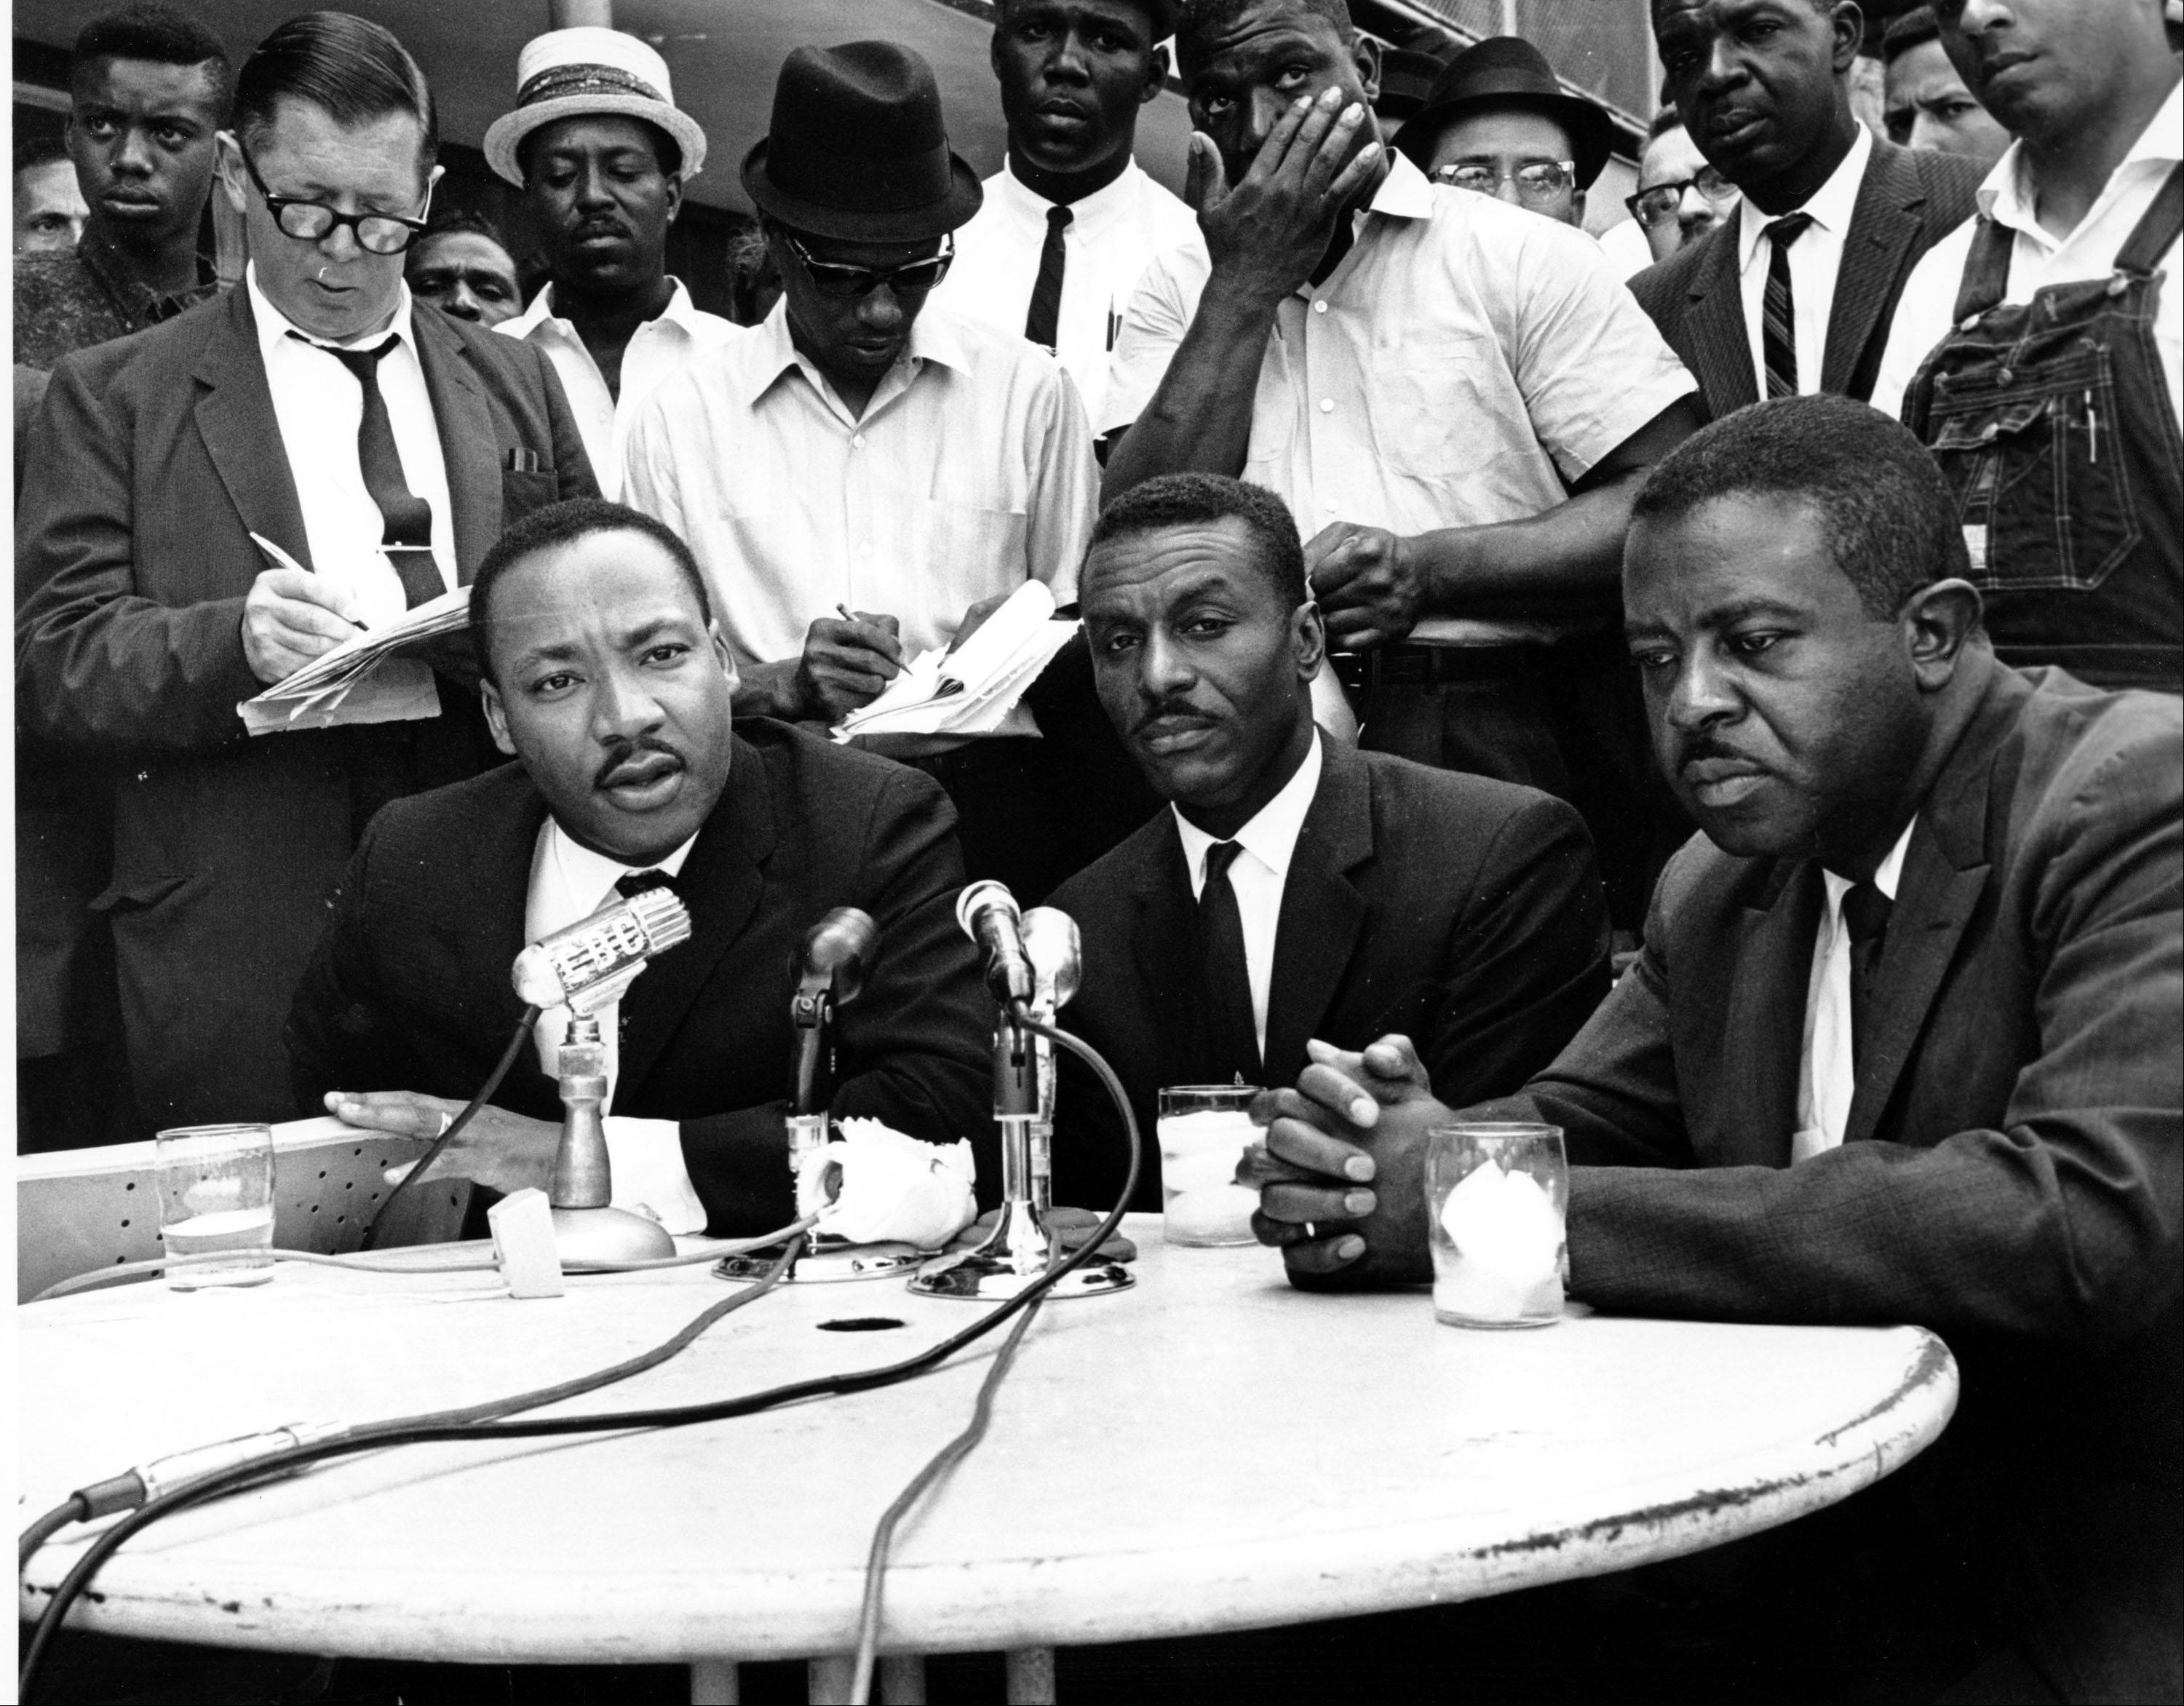 In a May 8, 1963 file photo, civil rights leaders, Rev. Martin Luther King Jr., left, Rev. Fred Shuttlesworth, center, and Rev. Ralph Abernathy hold a news conference in Birmingham, Ala.